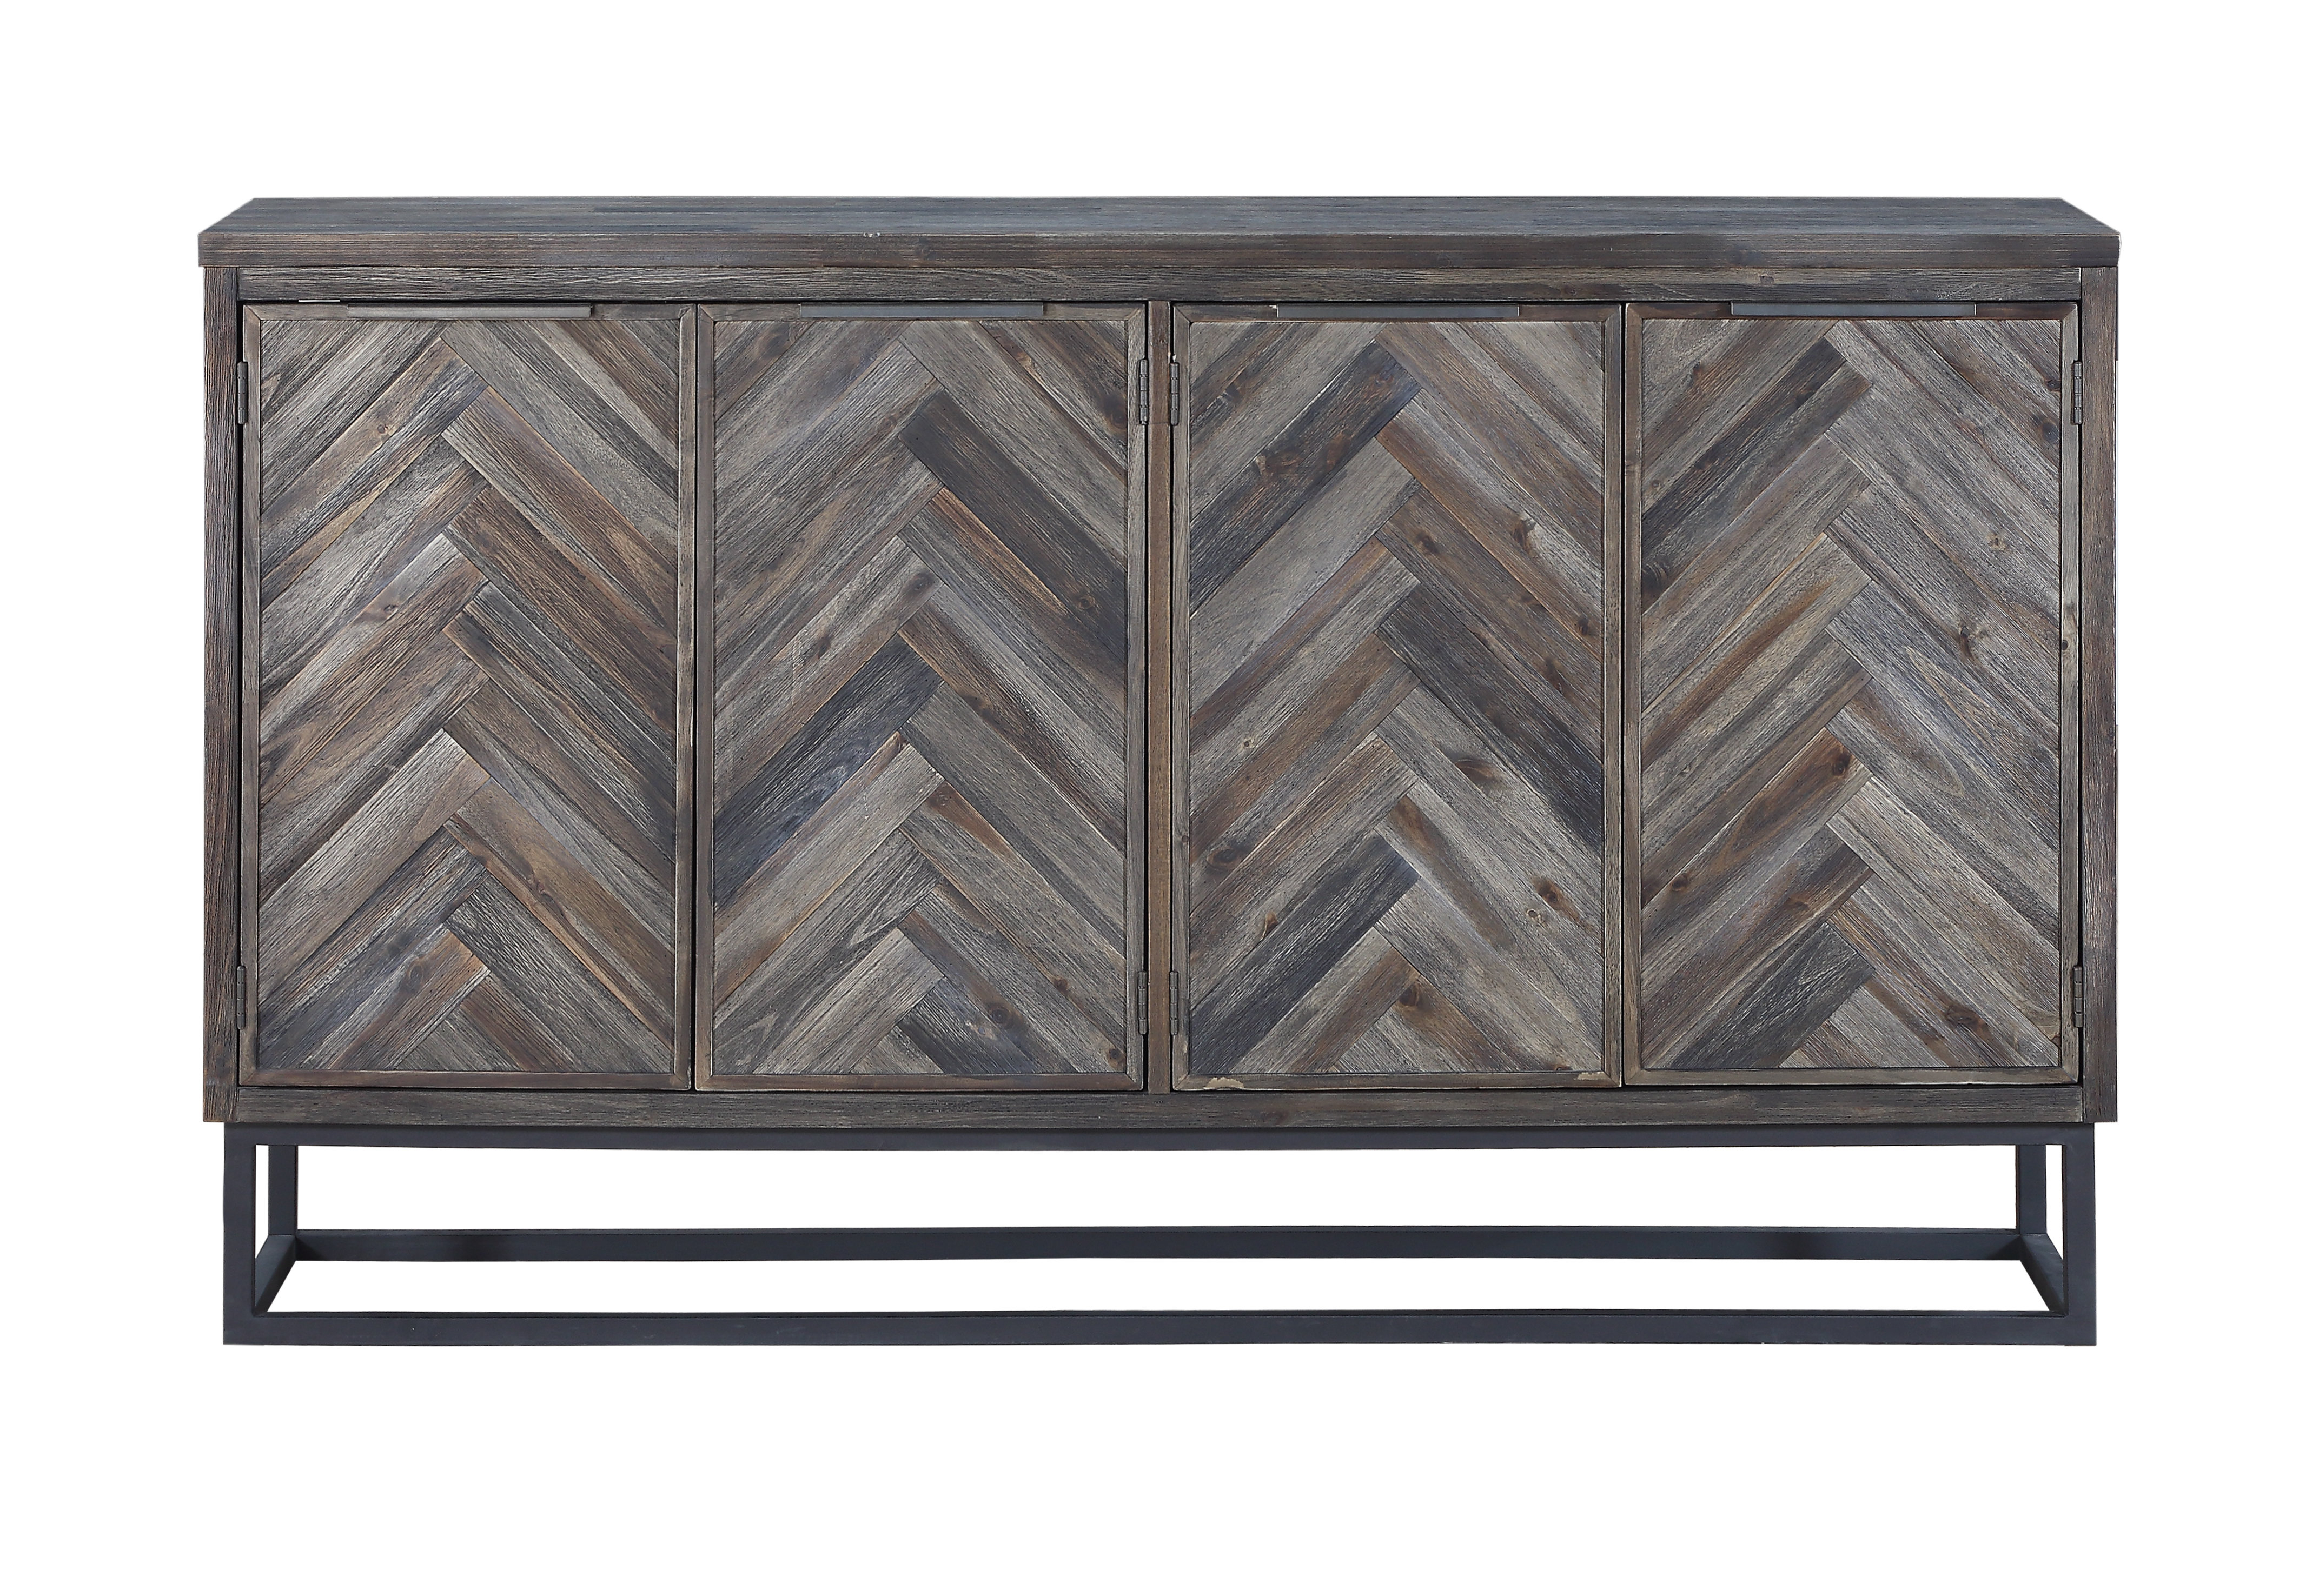 Modern & Contemporary Deny Credenza | Allmodern Pertaining To Lainey Credenzas (View 12 of 20)